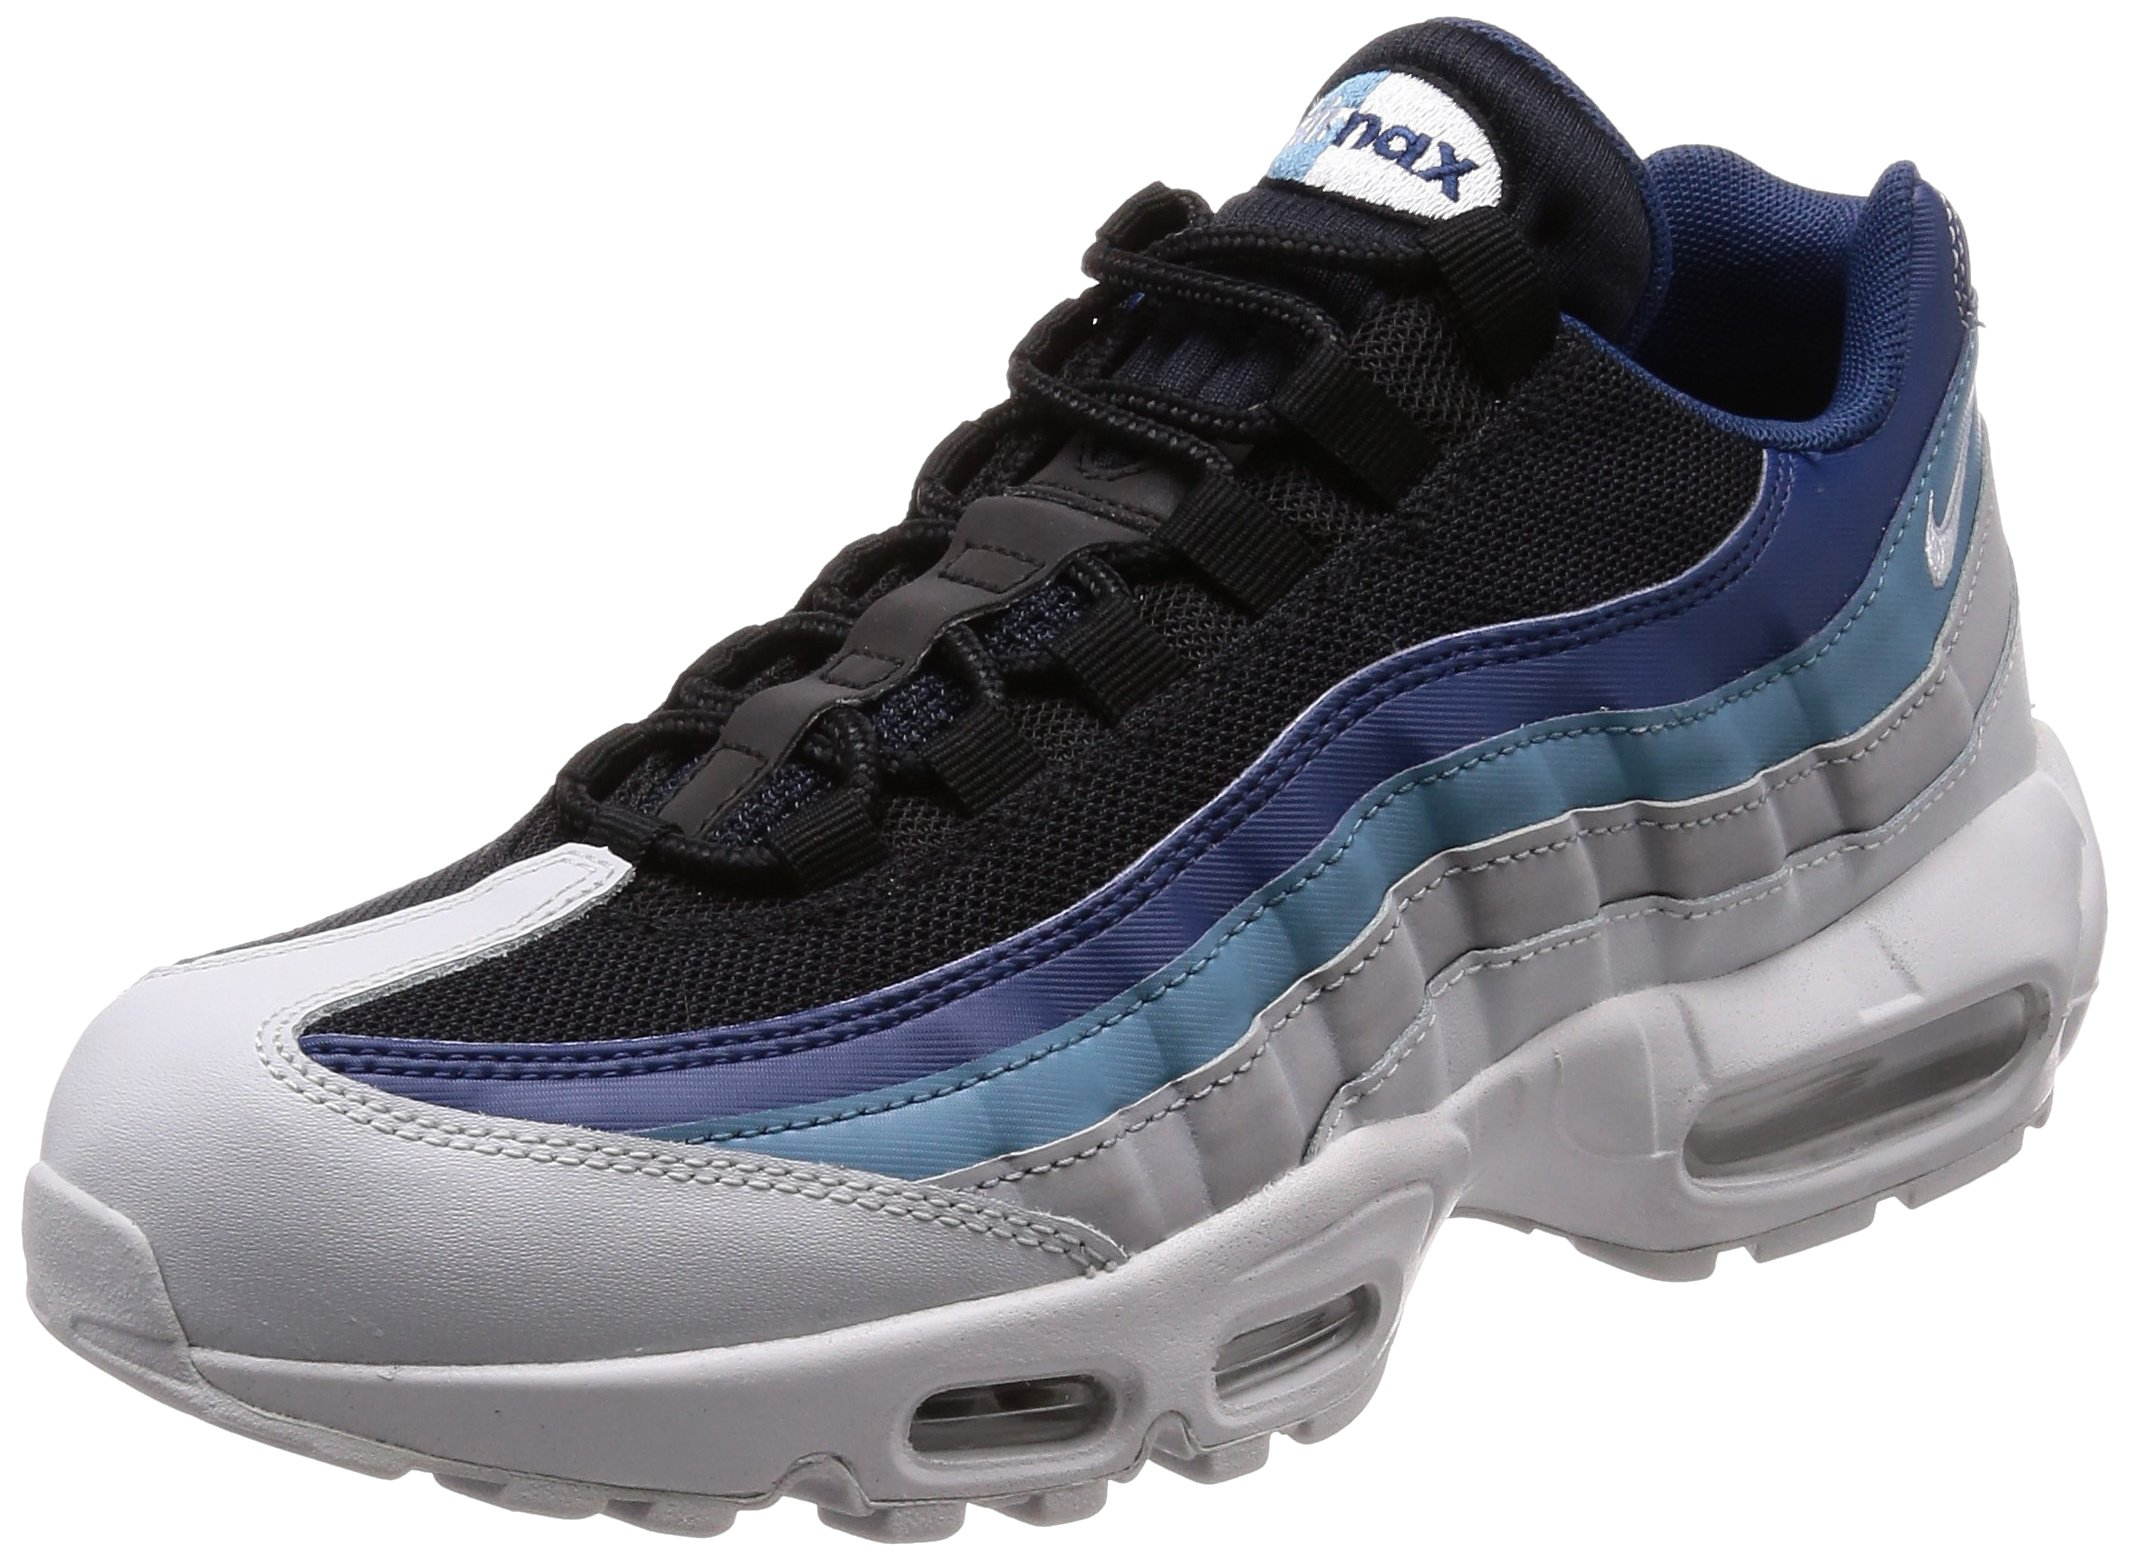 check out 6259a b3fa5 Galleon - NIKE Air Max 95 Essential Lifestyle Sneakers New - 8